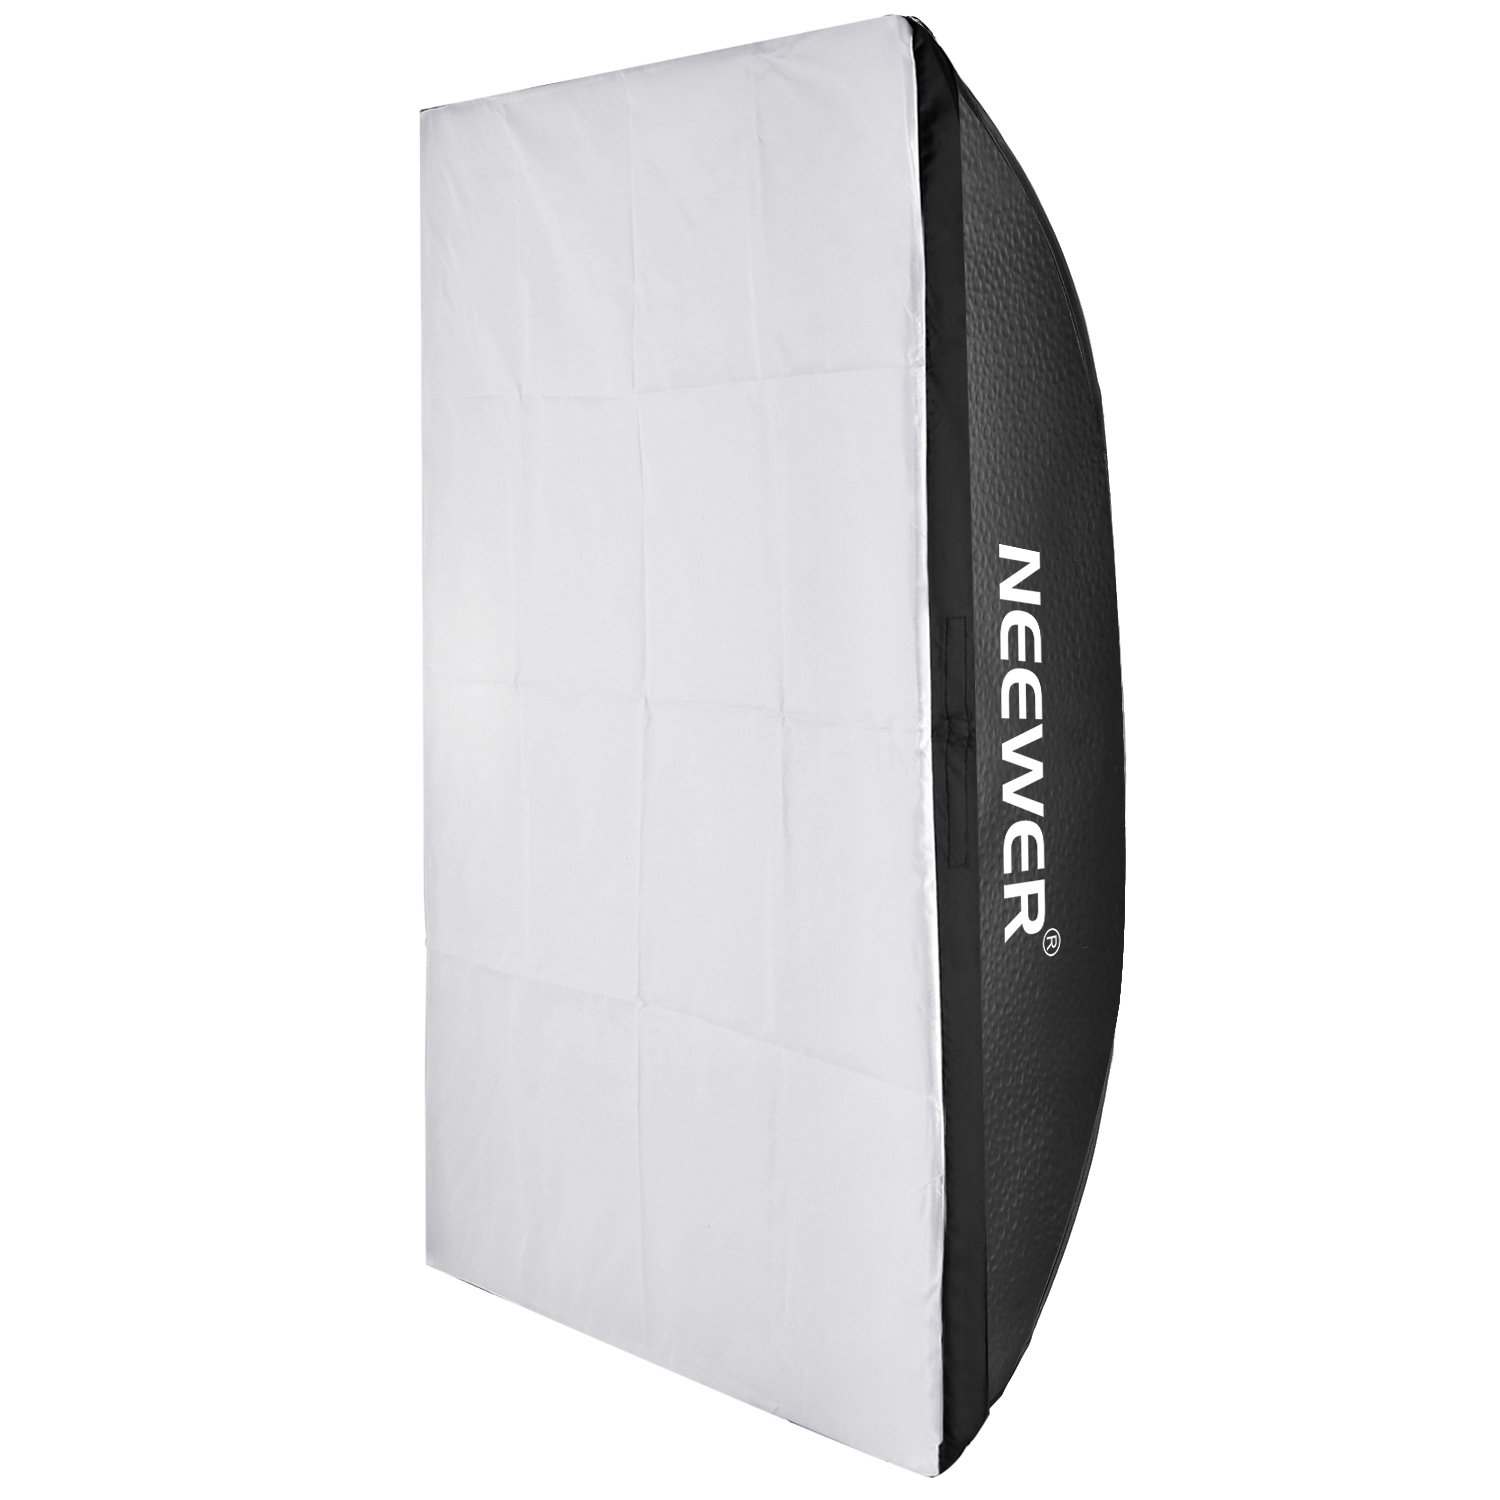 Neewer 20x28 inches/50x70 centimeters Rectangular Softbox Photography Light for Neewer Godox N-250W N-300W 300DI 250DI 300SDI 250SDI 180W Studio Flash Strobe Monolight by Neewer